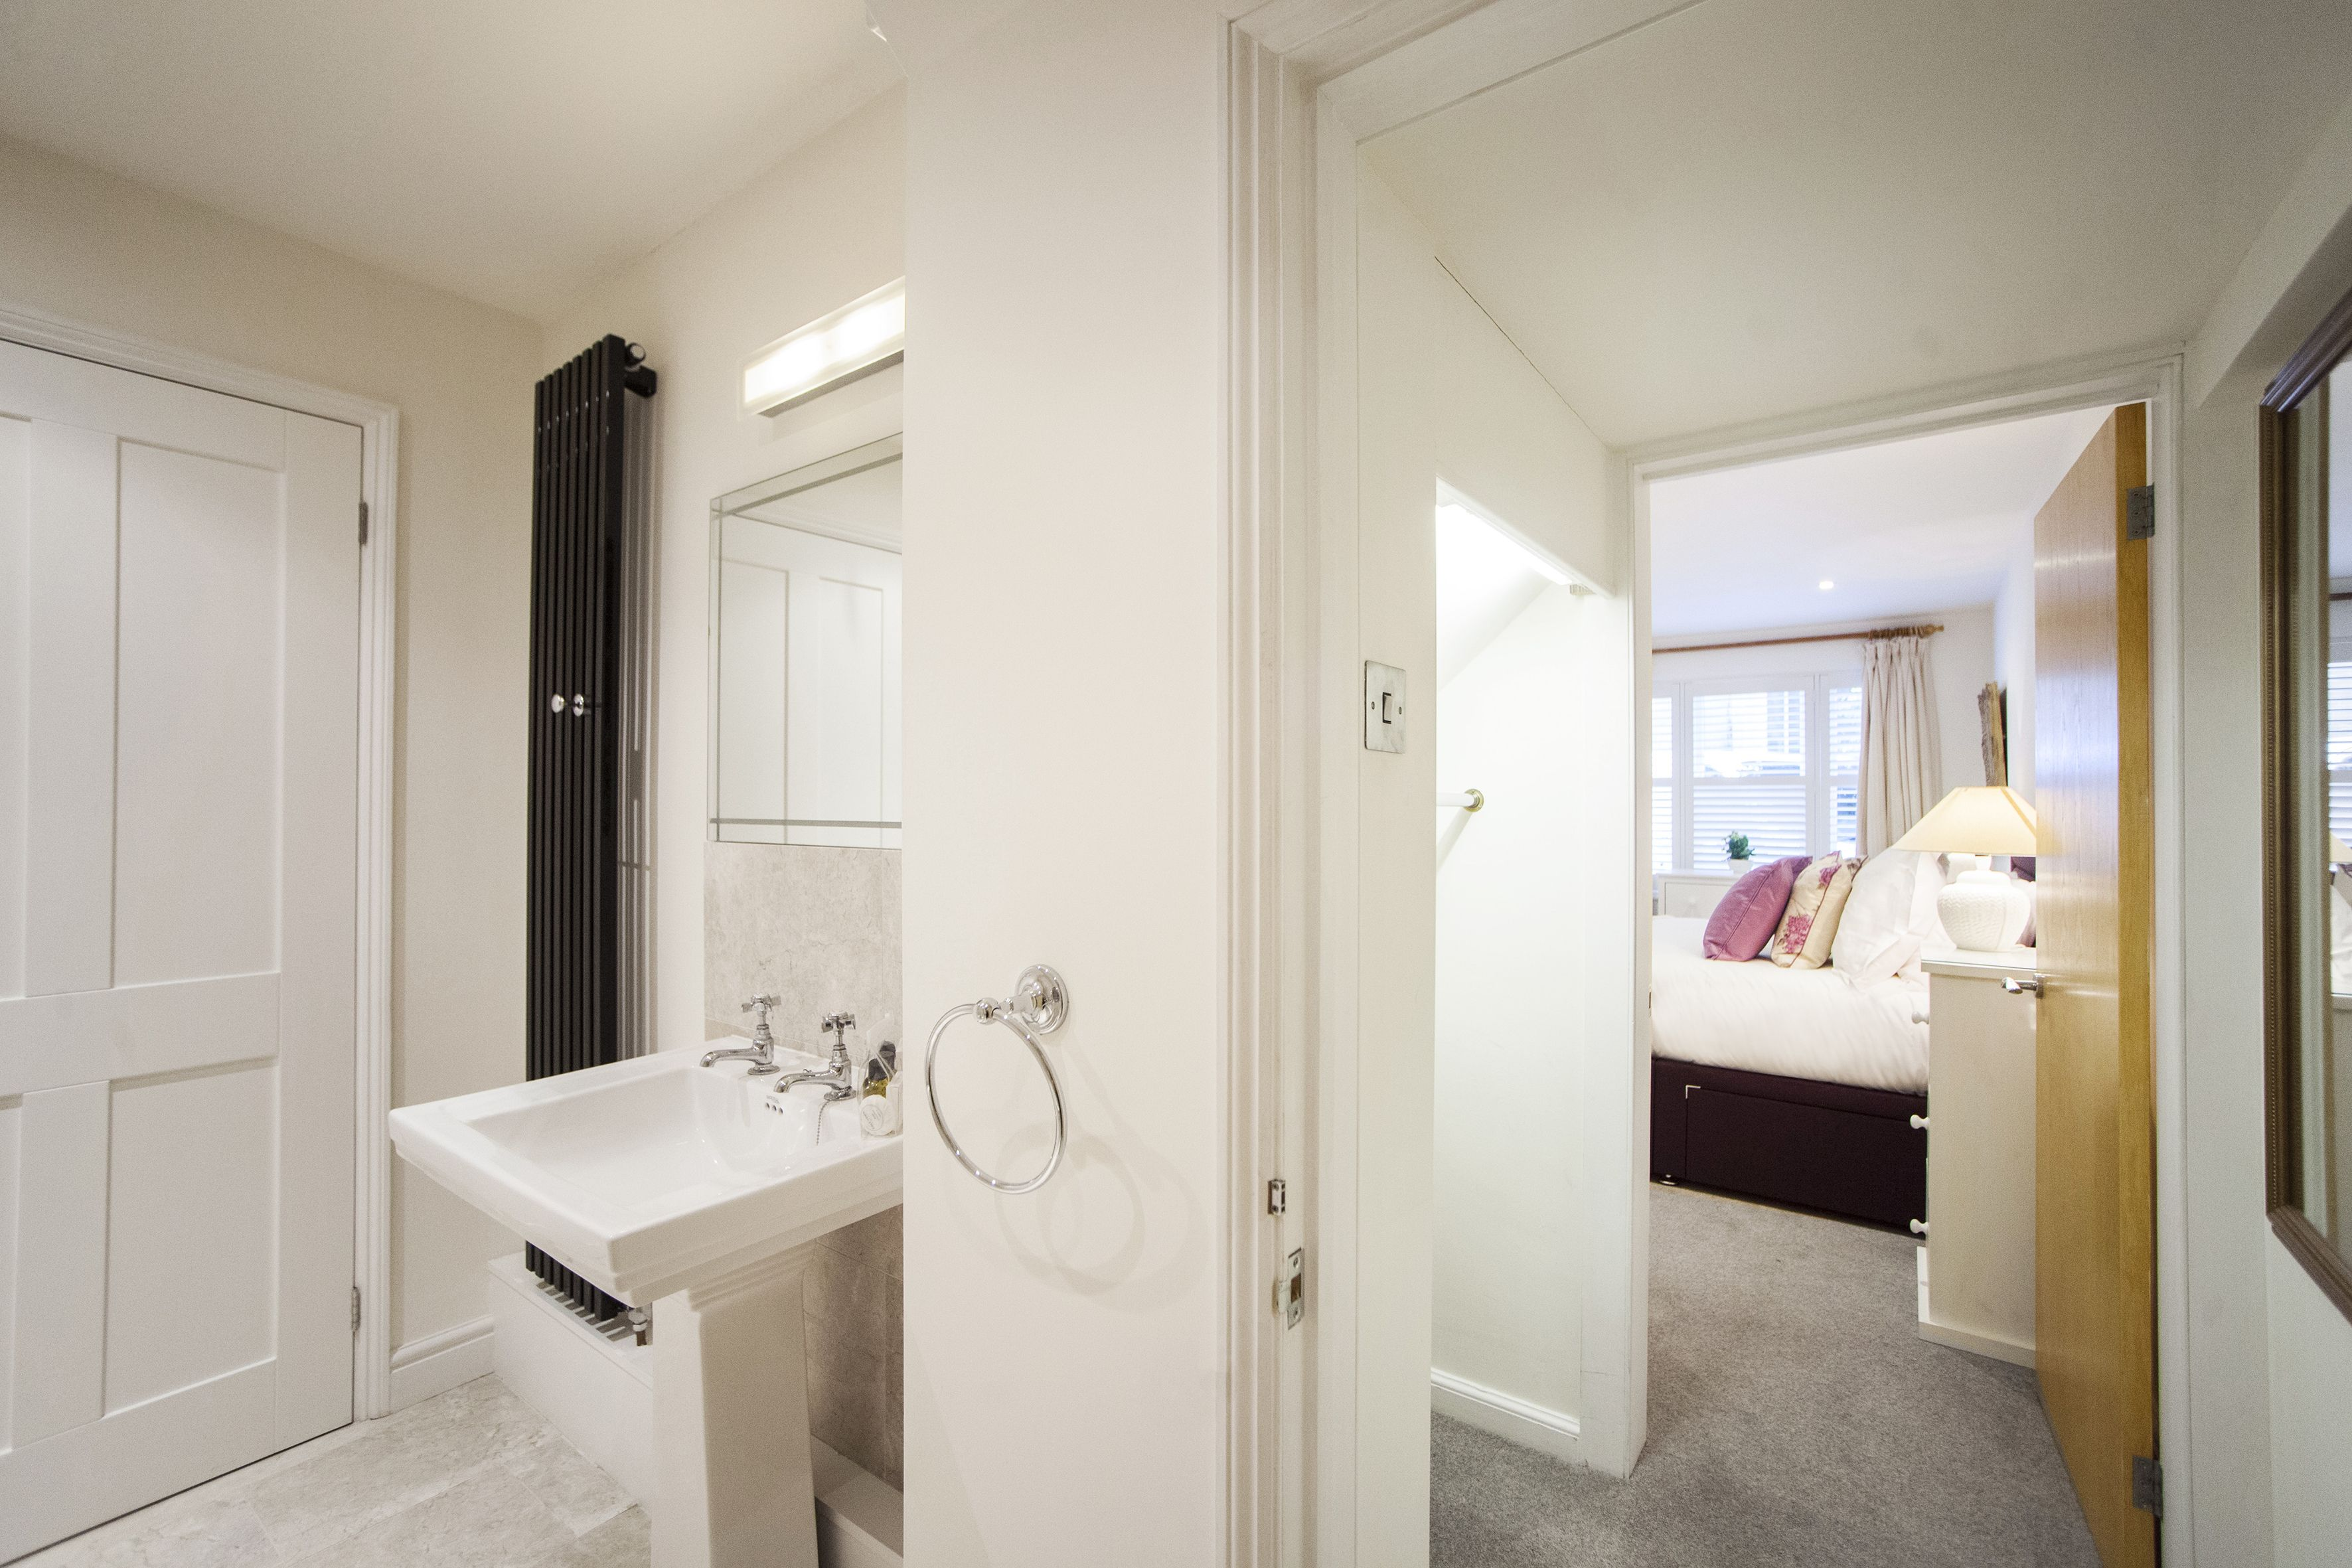 Sydney Stables   2 Bedroom Holiday Home in Central Bath